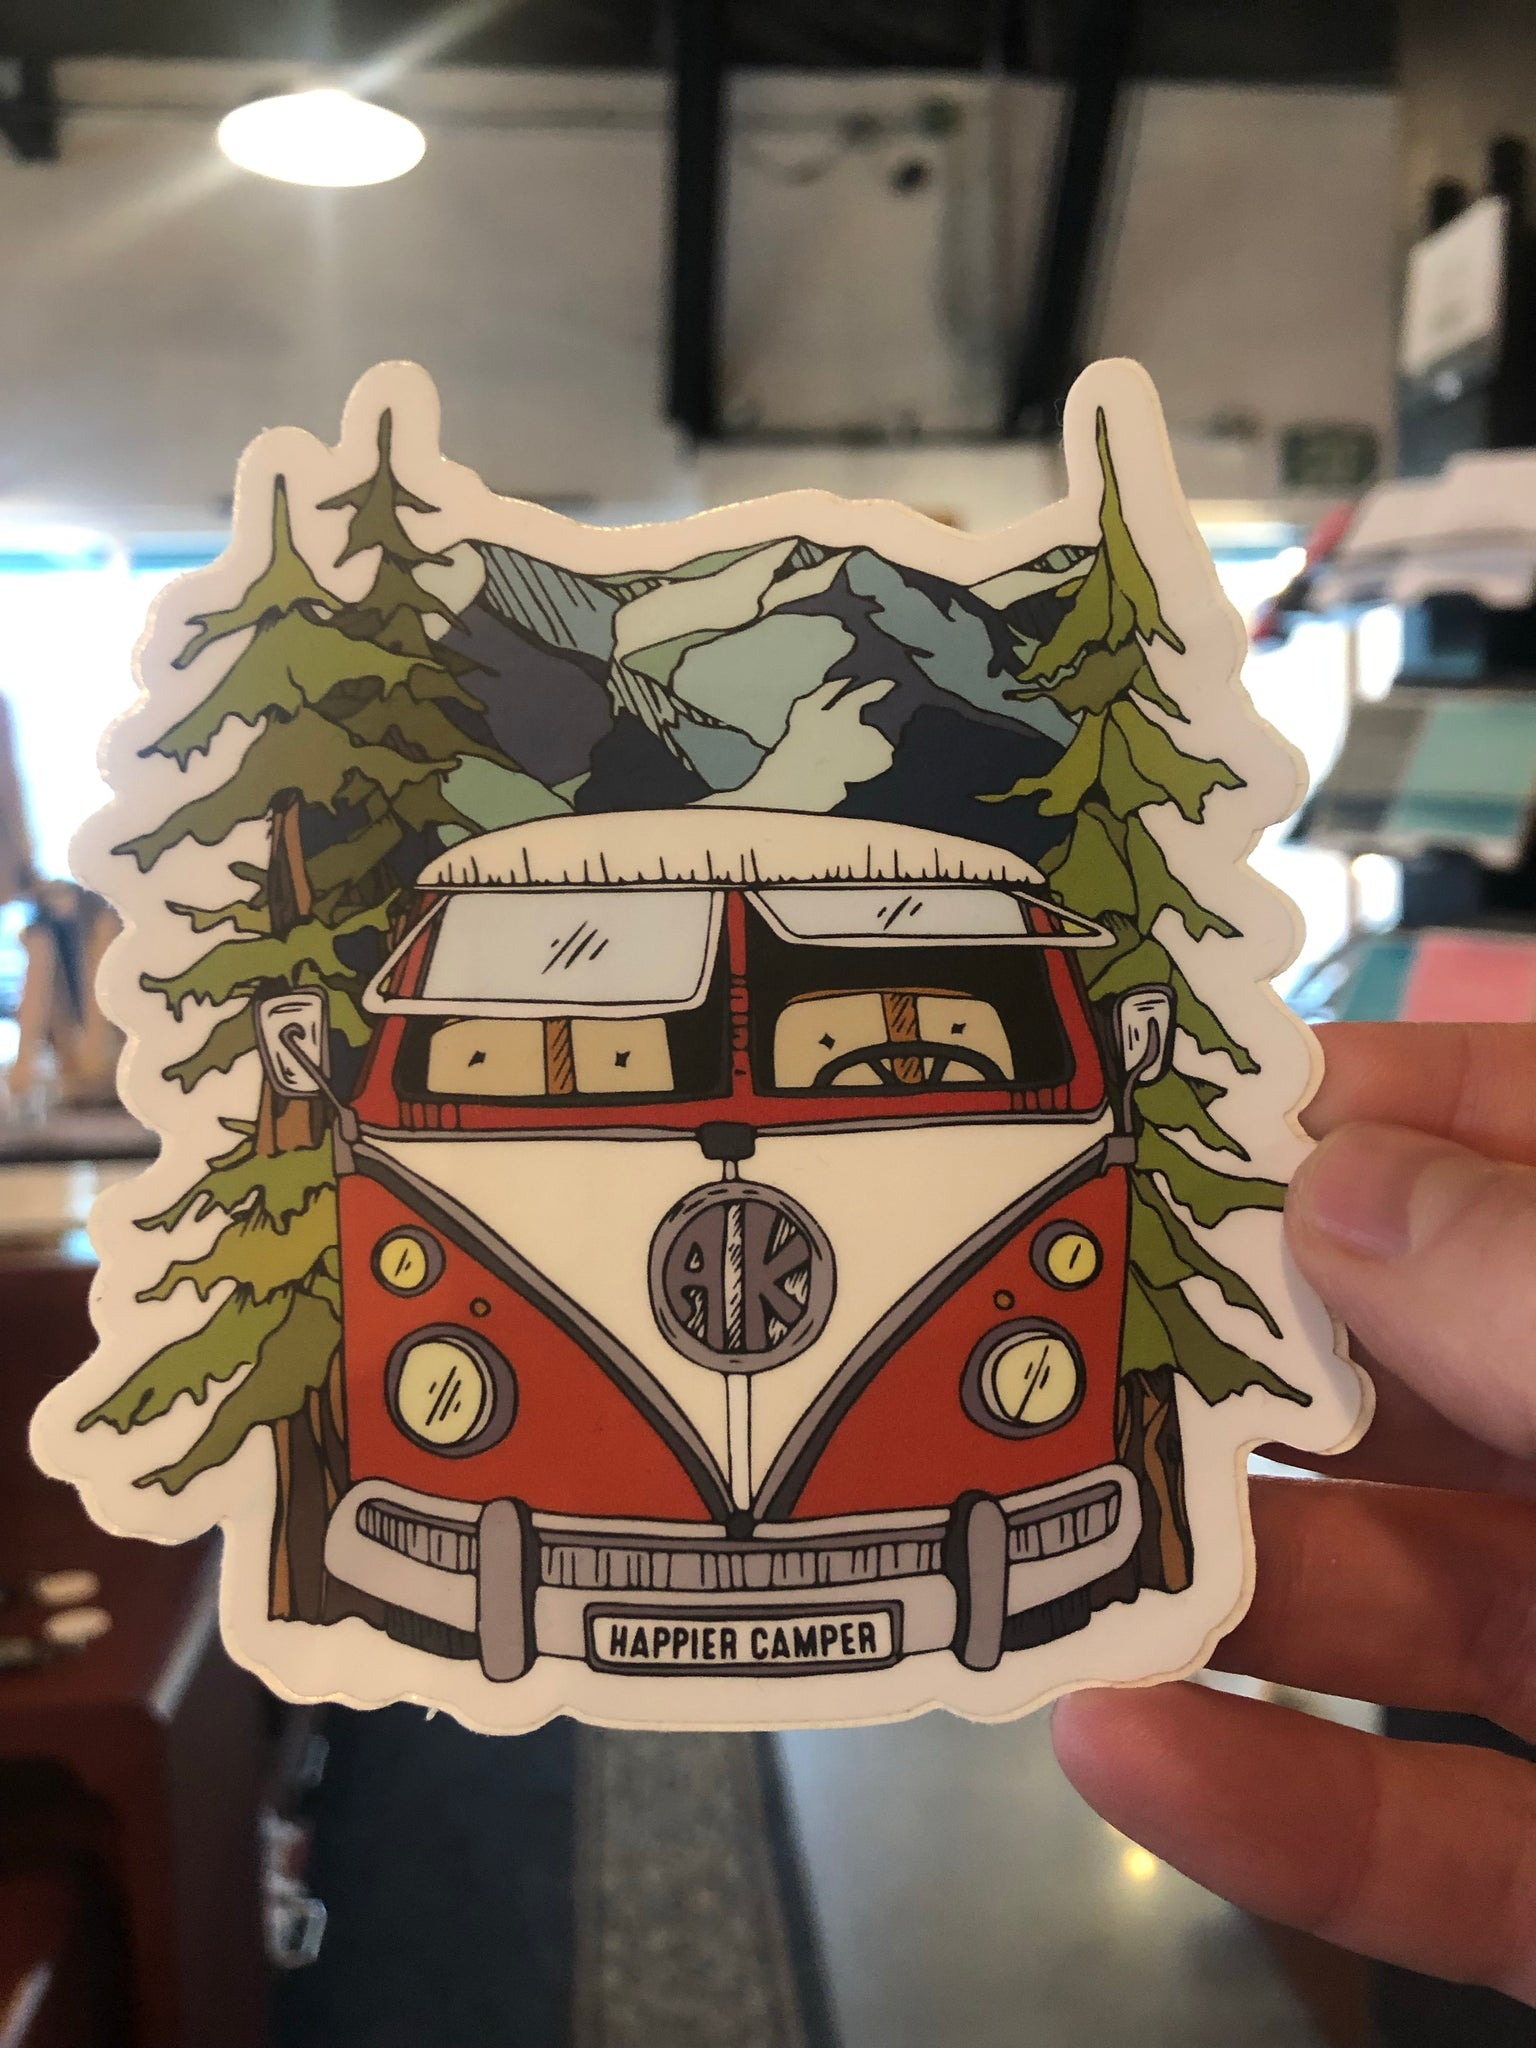 Happier Camper Sticker